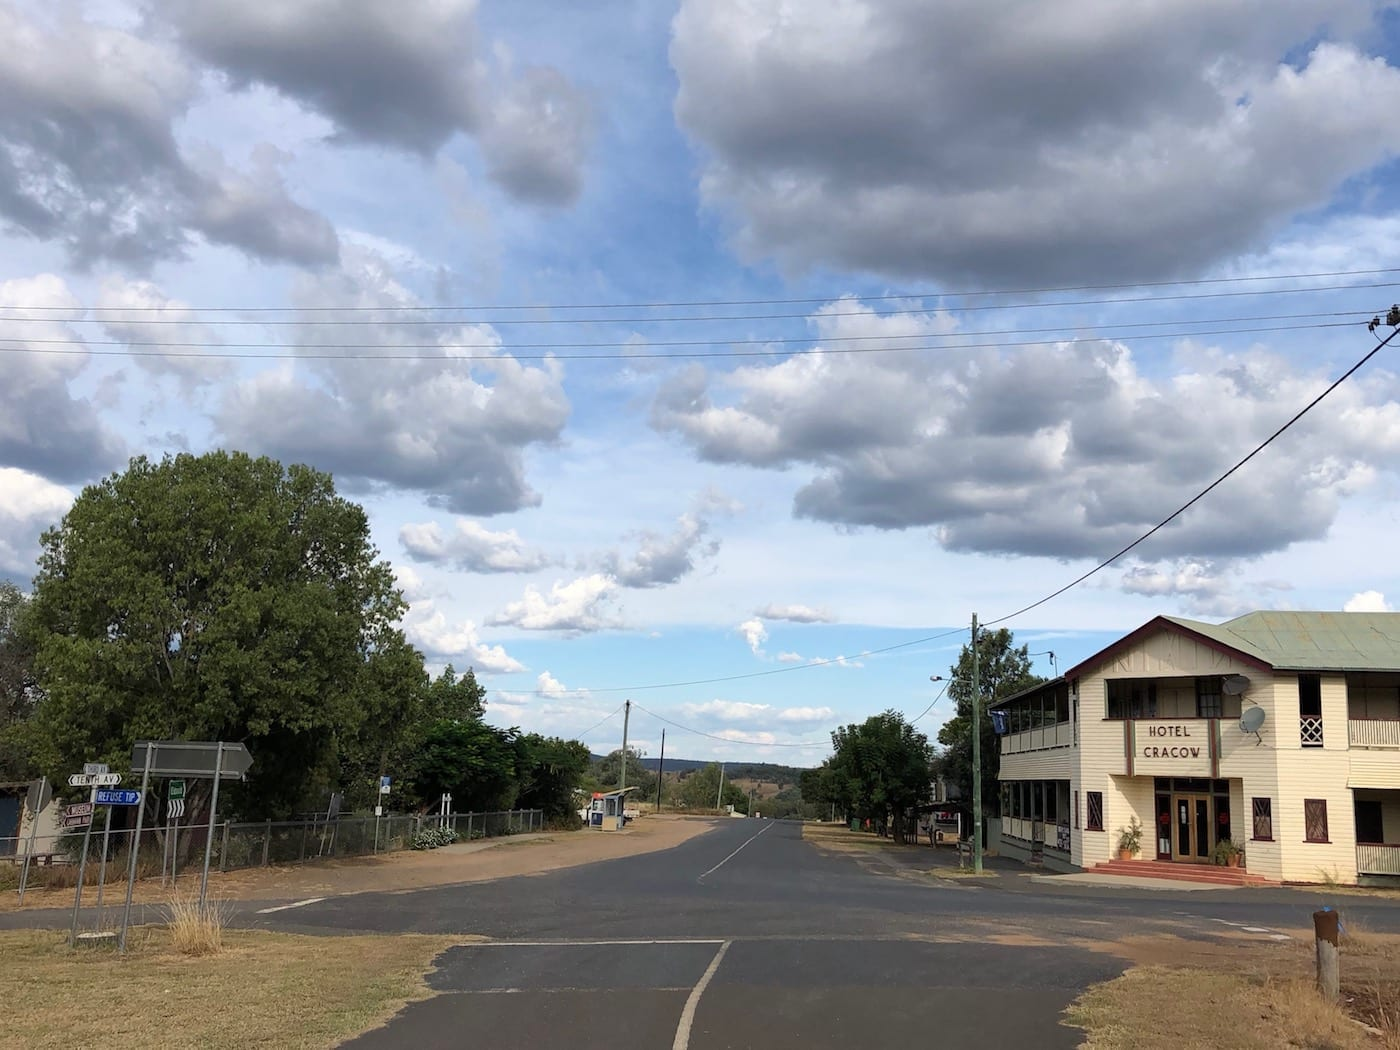 The main street, Cracow QLD.